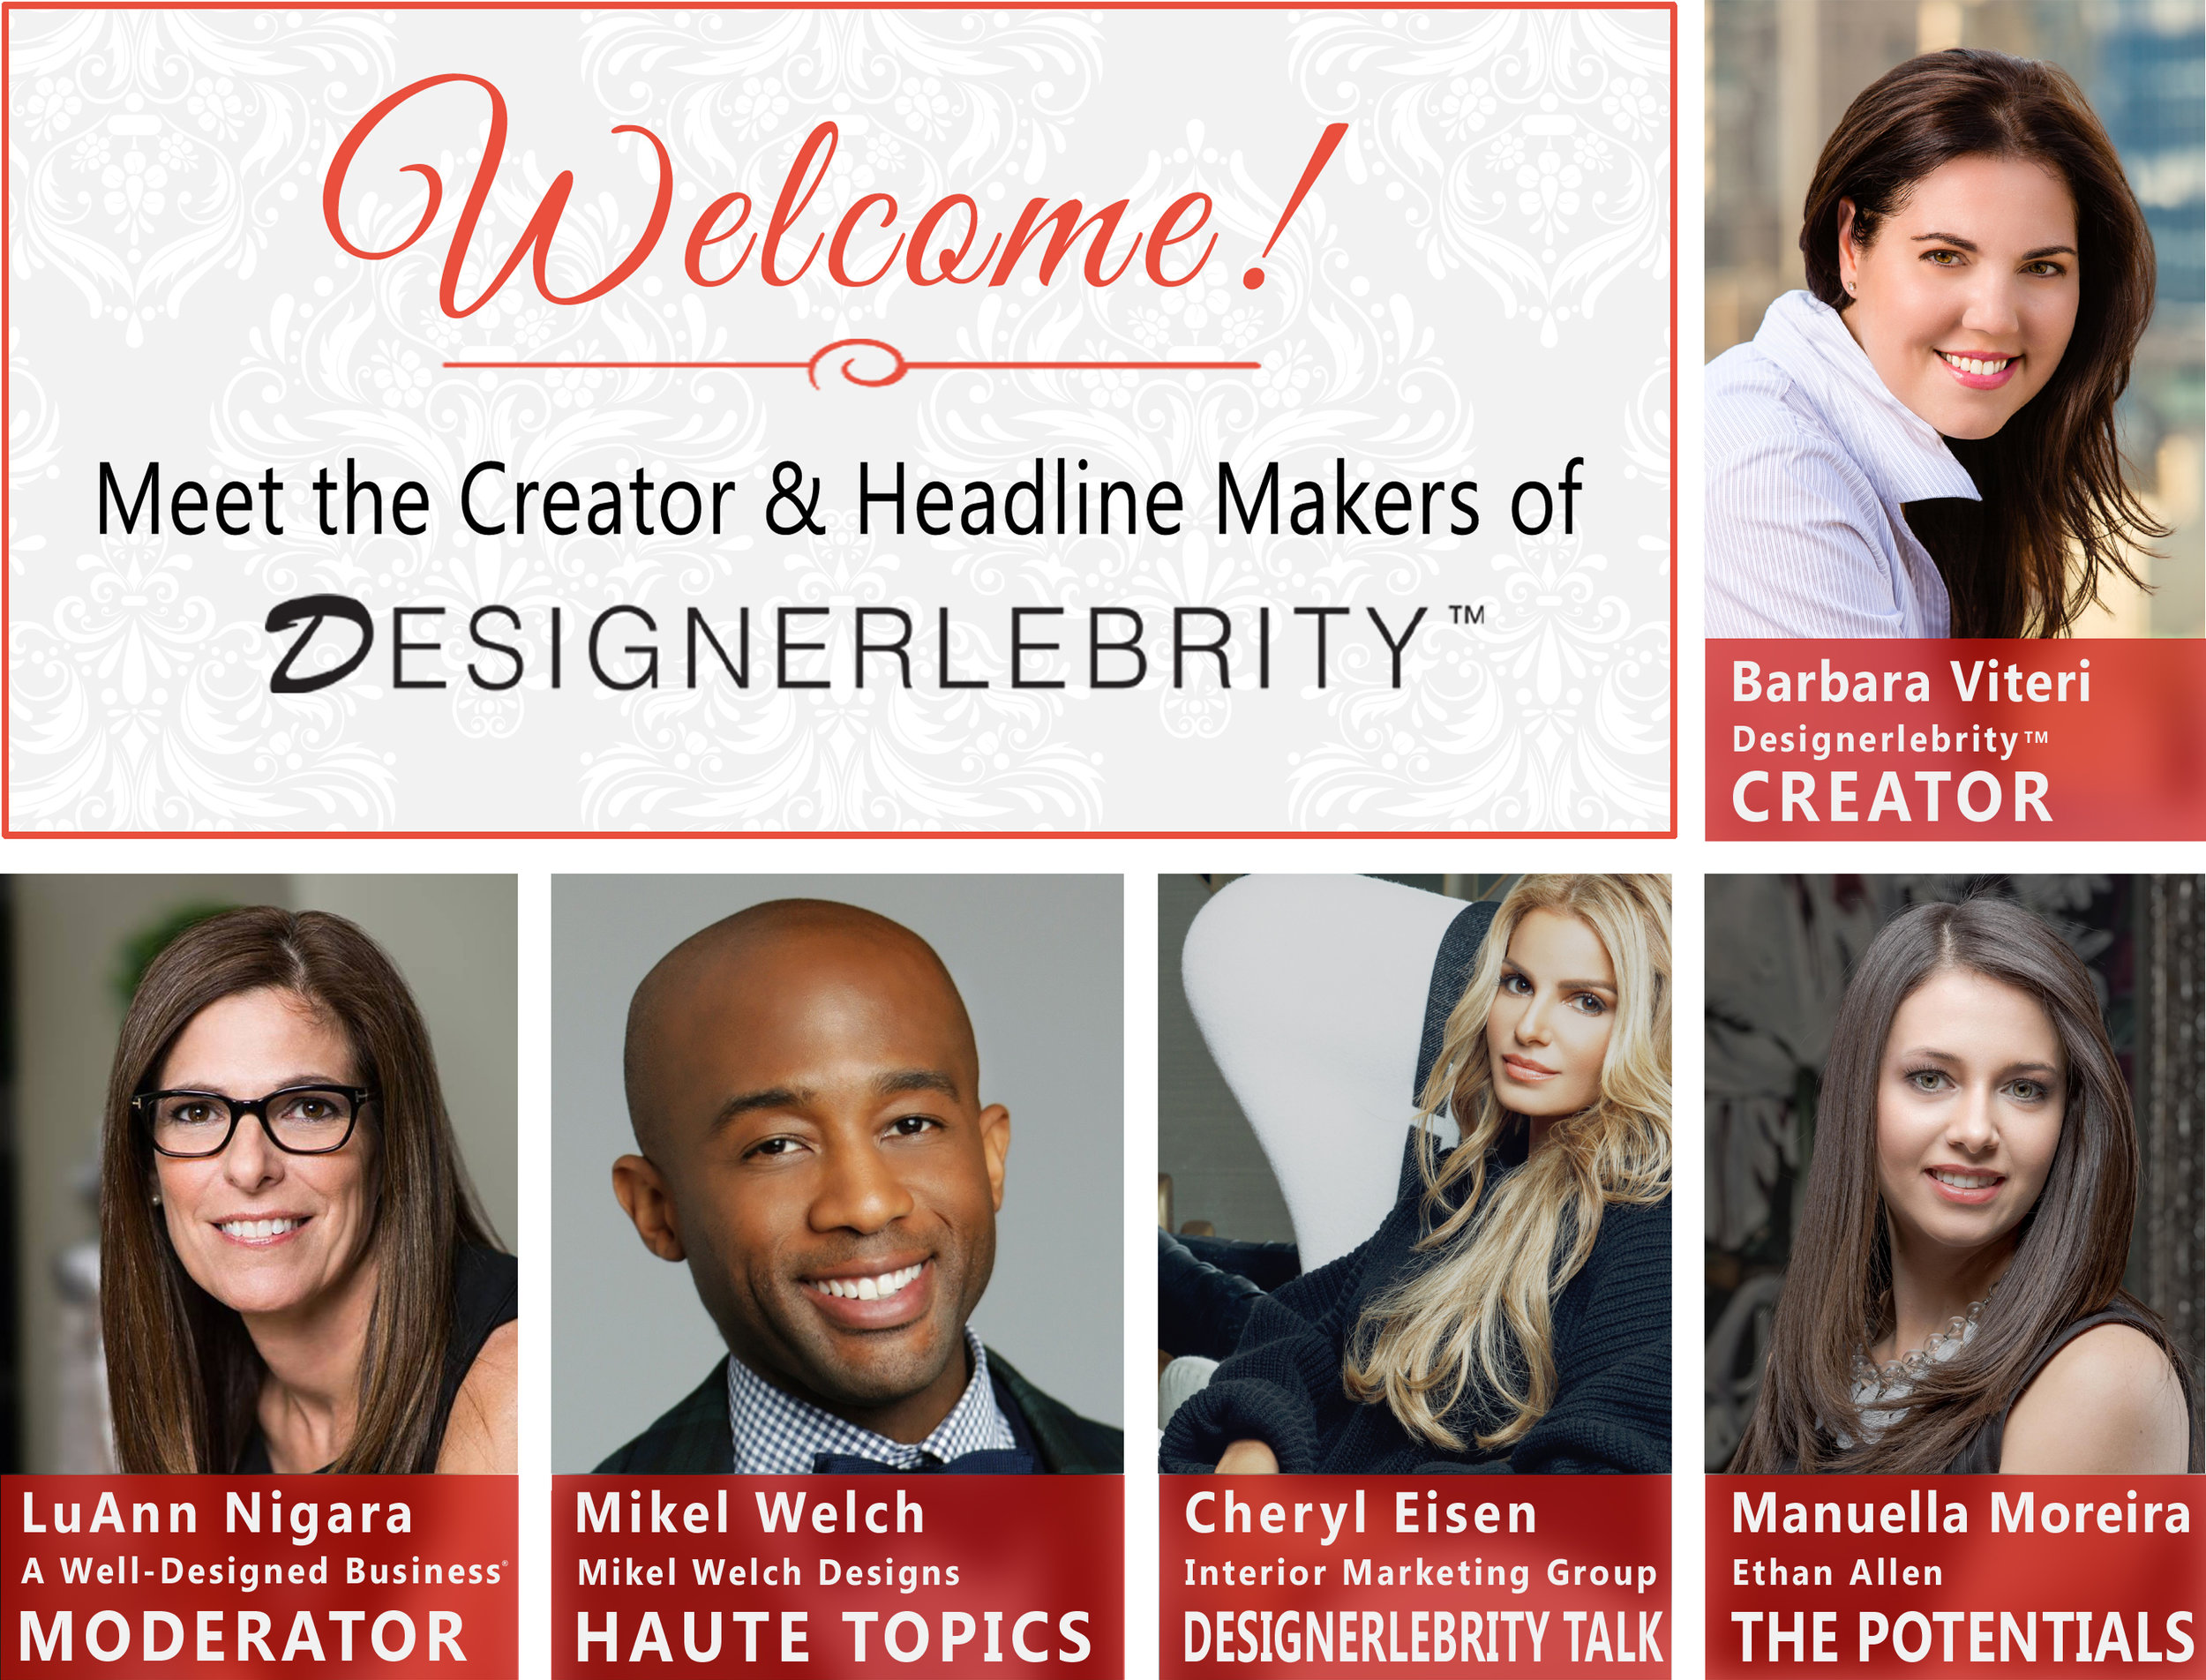 Manuella Moreira - Keynote speaker at the Designerlebrity event hosted by Ethan Allen on May 17th. The event broke Tastefully Inspired Facebook LIVE viewing records and became Ethan Allen's flatiron location most shared design event on social media.